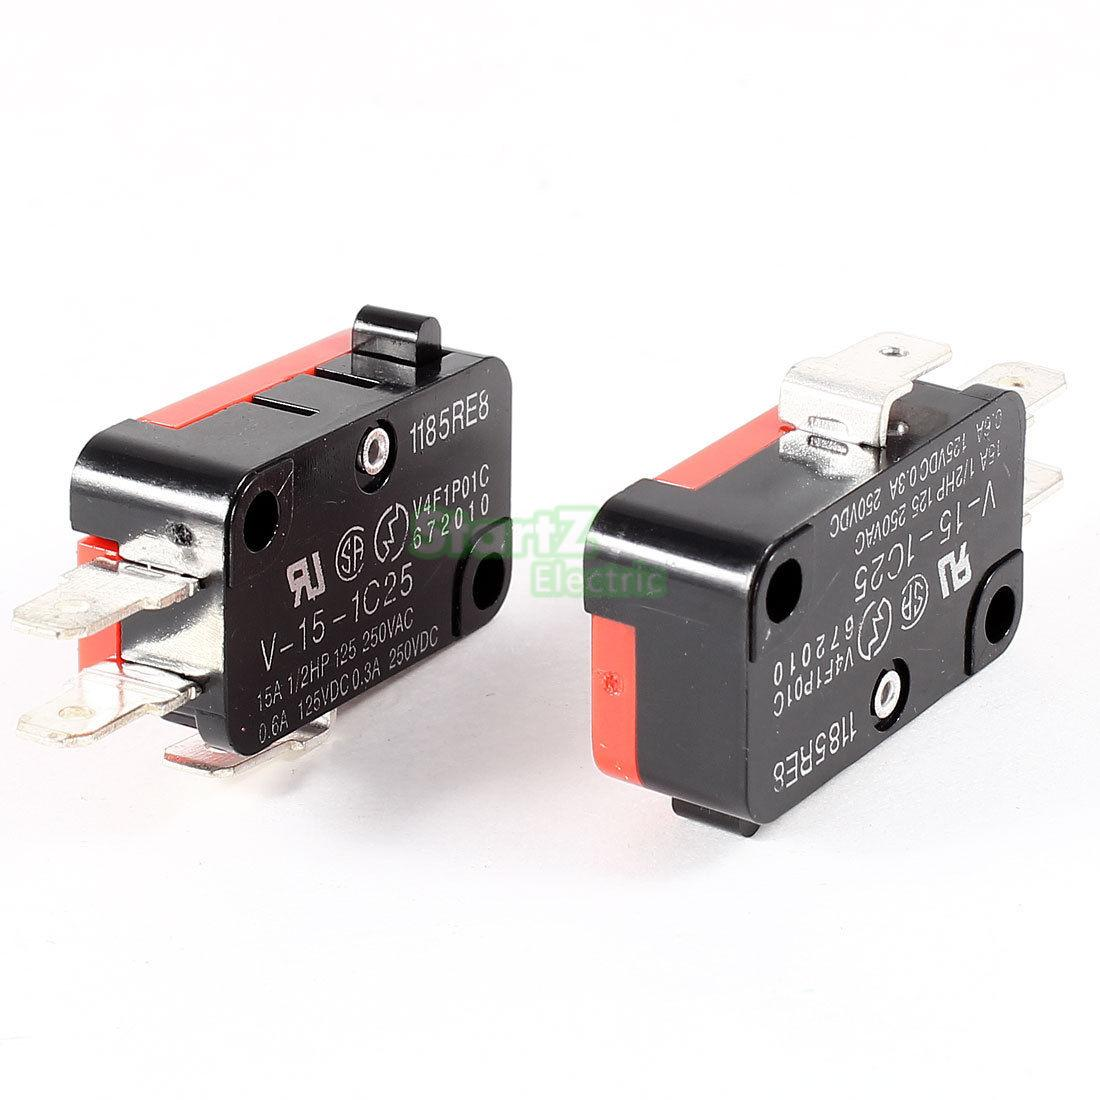 15A 250VAC V-15-1C25 Push Button SPDT 1NO 1NC Micro Switch 10Pcs ерш для туалета vitunhoo m1550